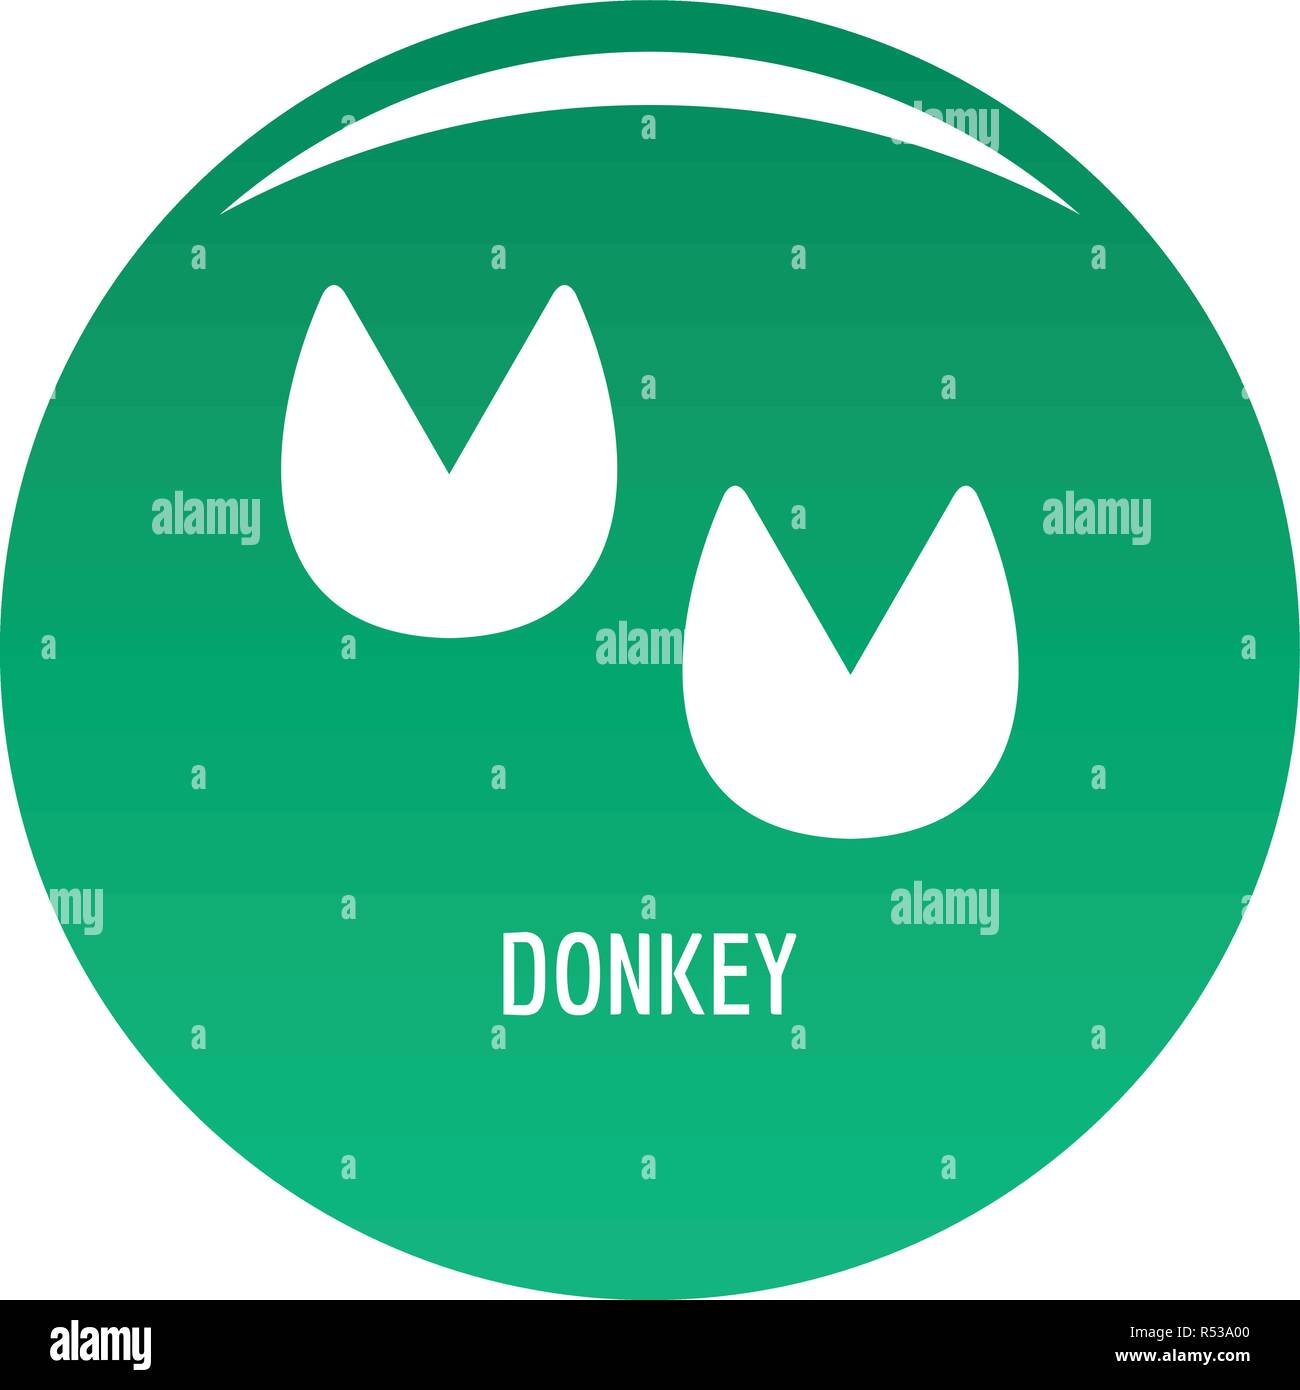 Donkey step icon. Simple illustration of donkey step vector icon for any design green - Stock Image